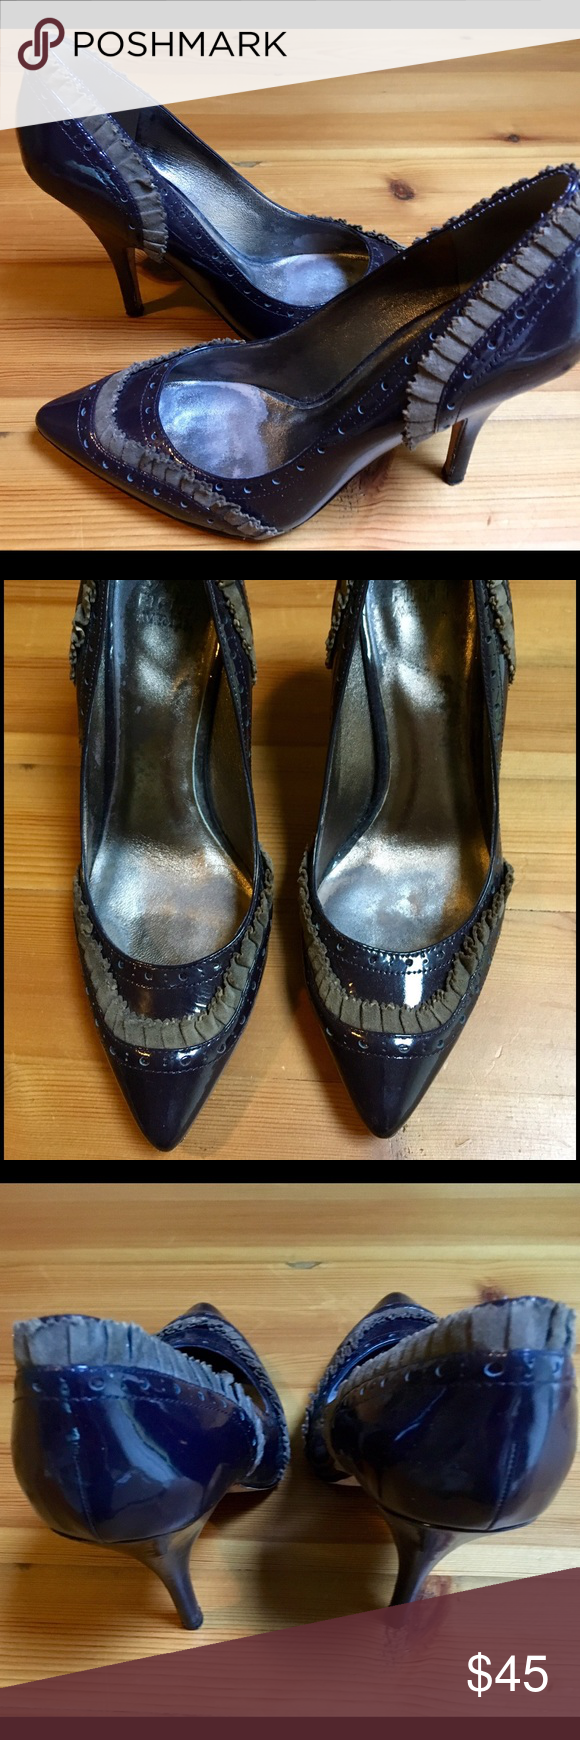 Saks Fifth Avenue Patent Leather Heels Saks Fifth Avenue Patent Leather 5 inch Pumps.  Purple with gray ruffle suede accents.  Wear on bottoms (not seen when worn) size 9 Saks Fifth Avenue Shoes Heels